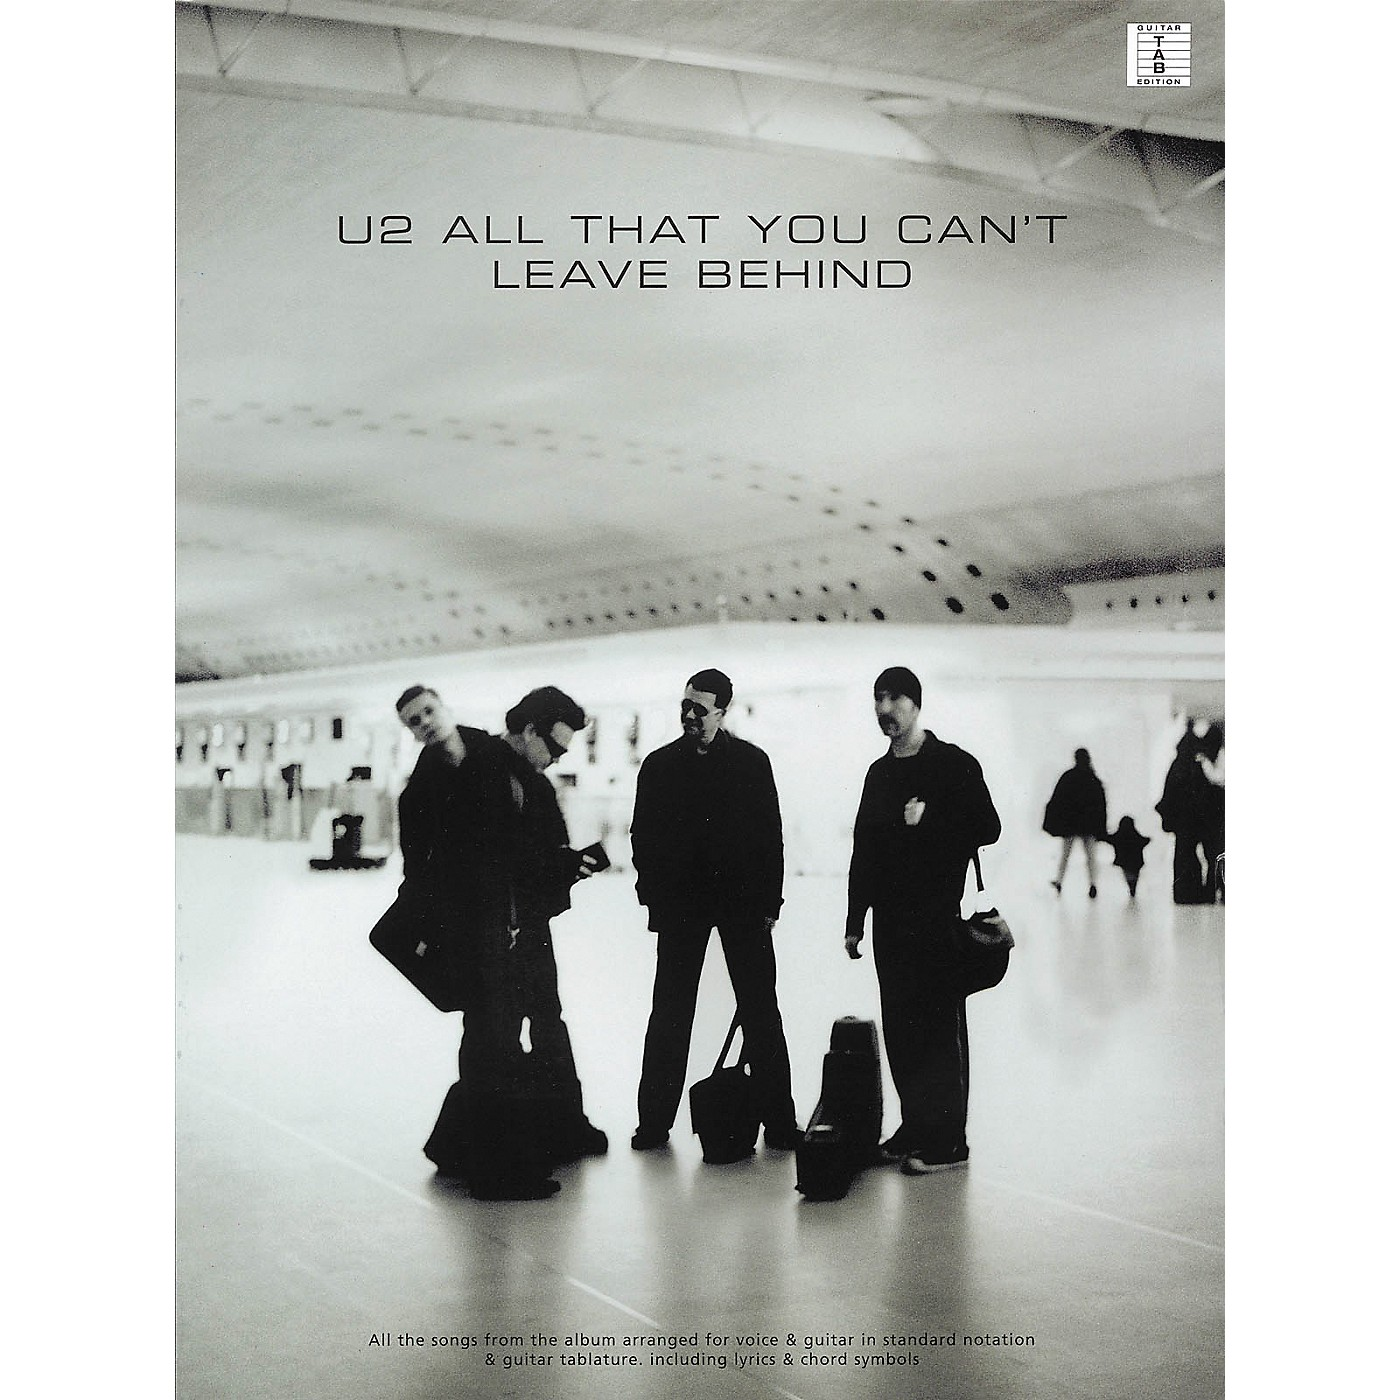 Hal Leonard U2 All That You Can't Leave Behind Guitar Tab Songbook thumbnail